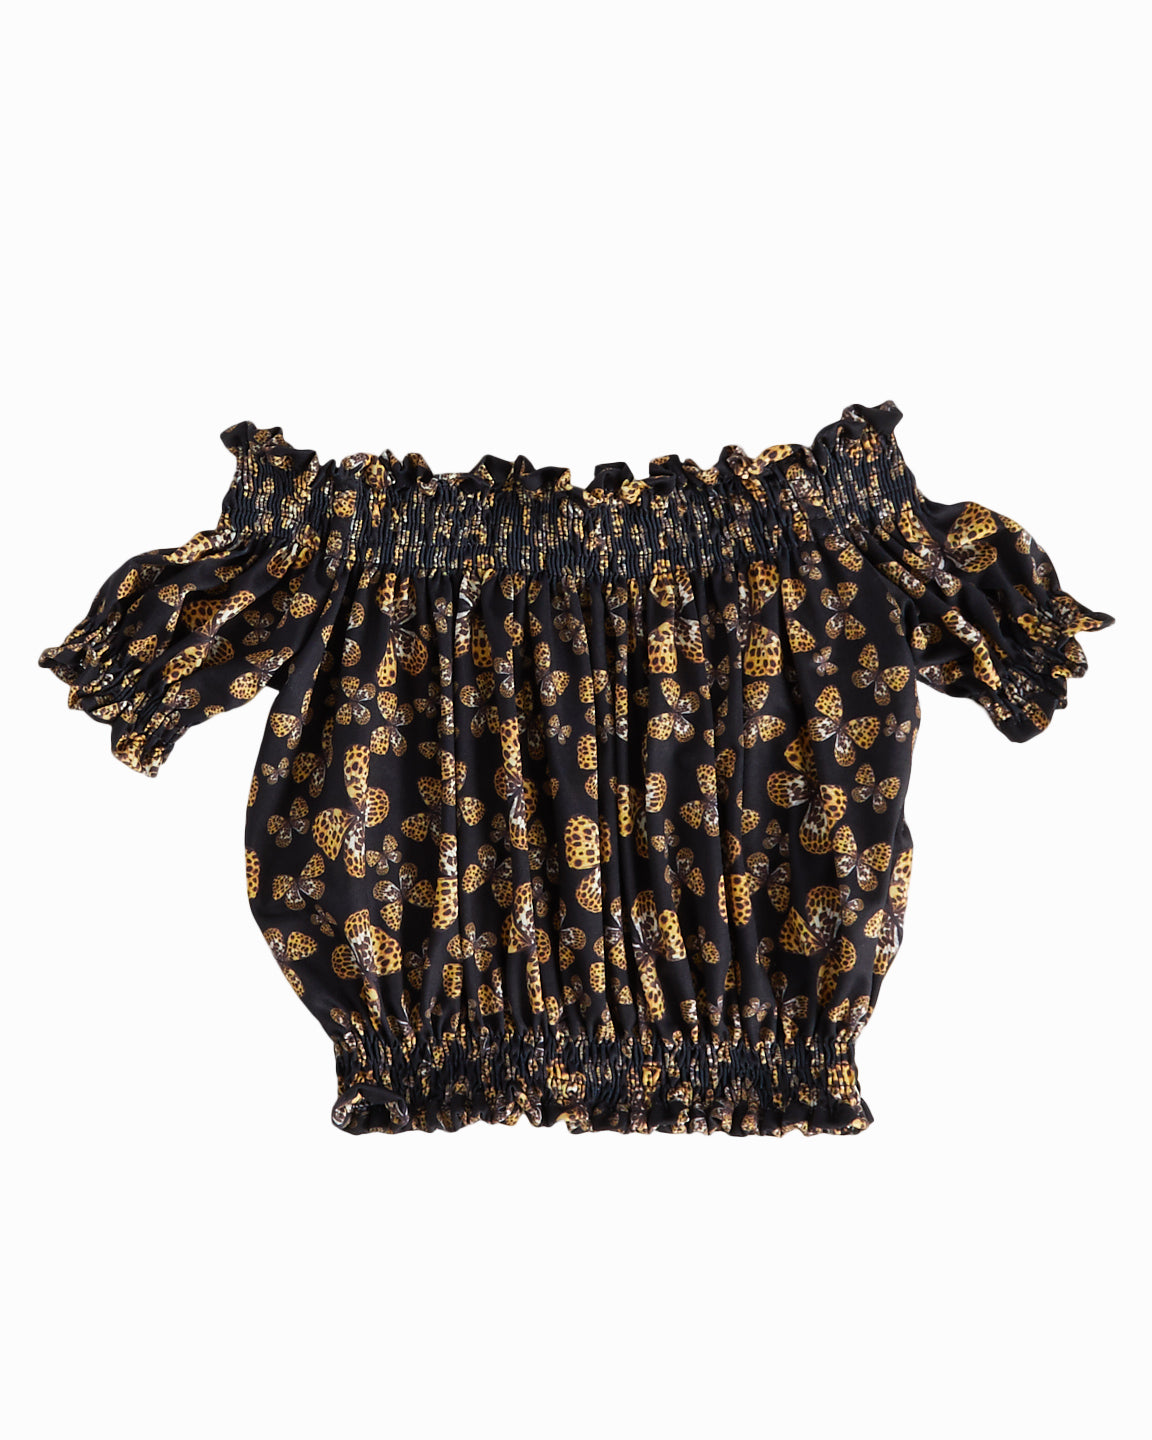 Exclusive Butterfly Black Smocked Top